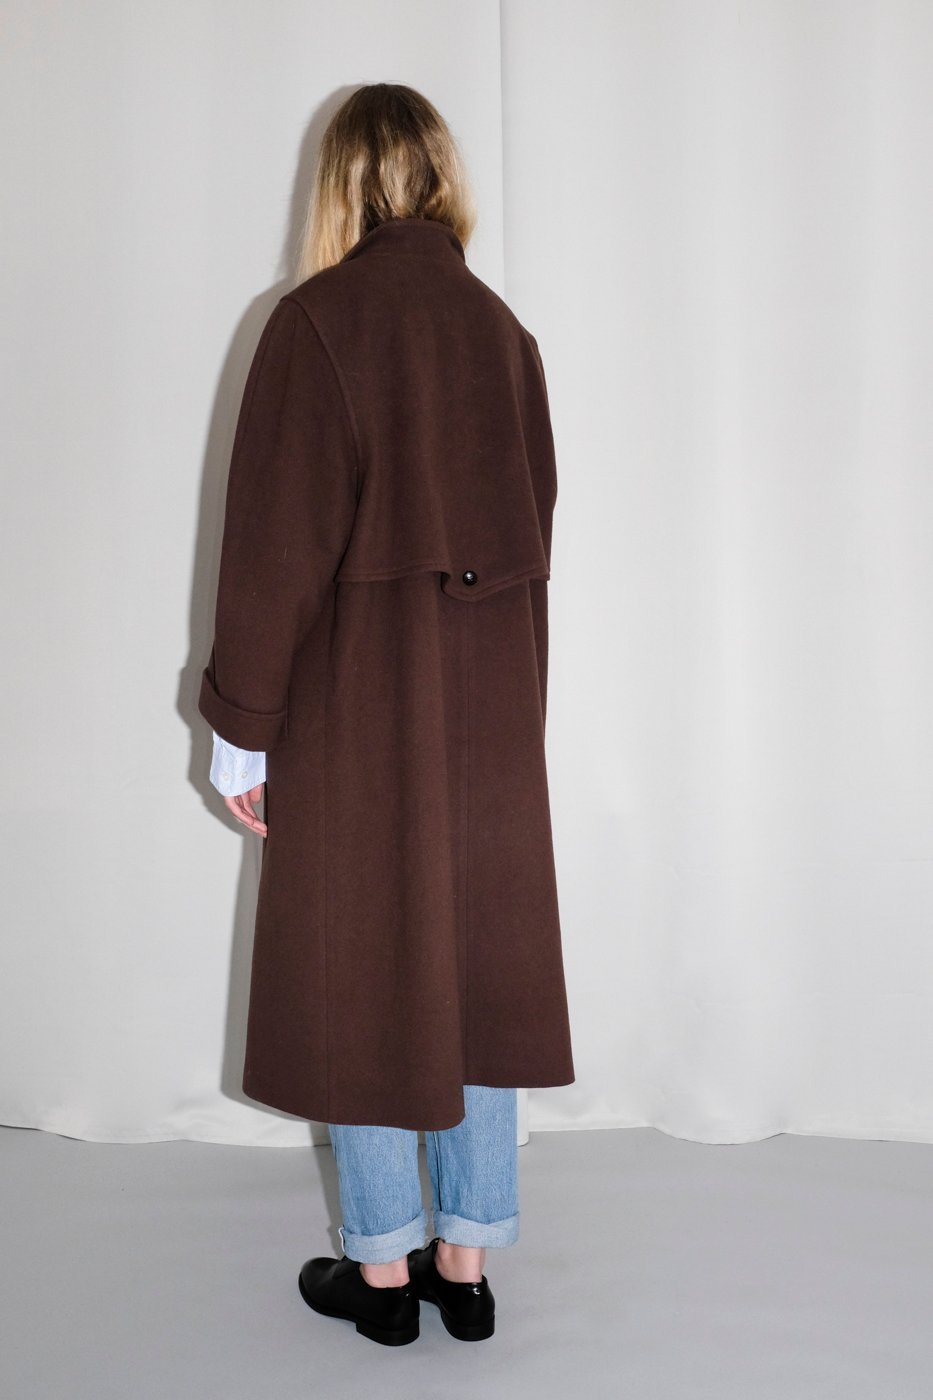 0333_BROWN VINTAGE WOOL COAT